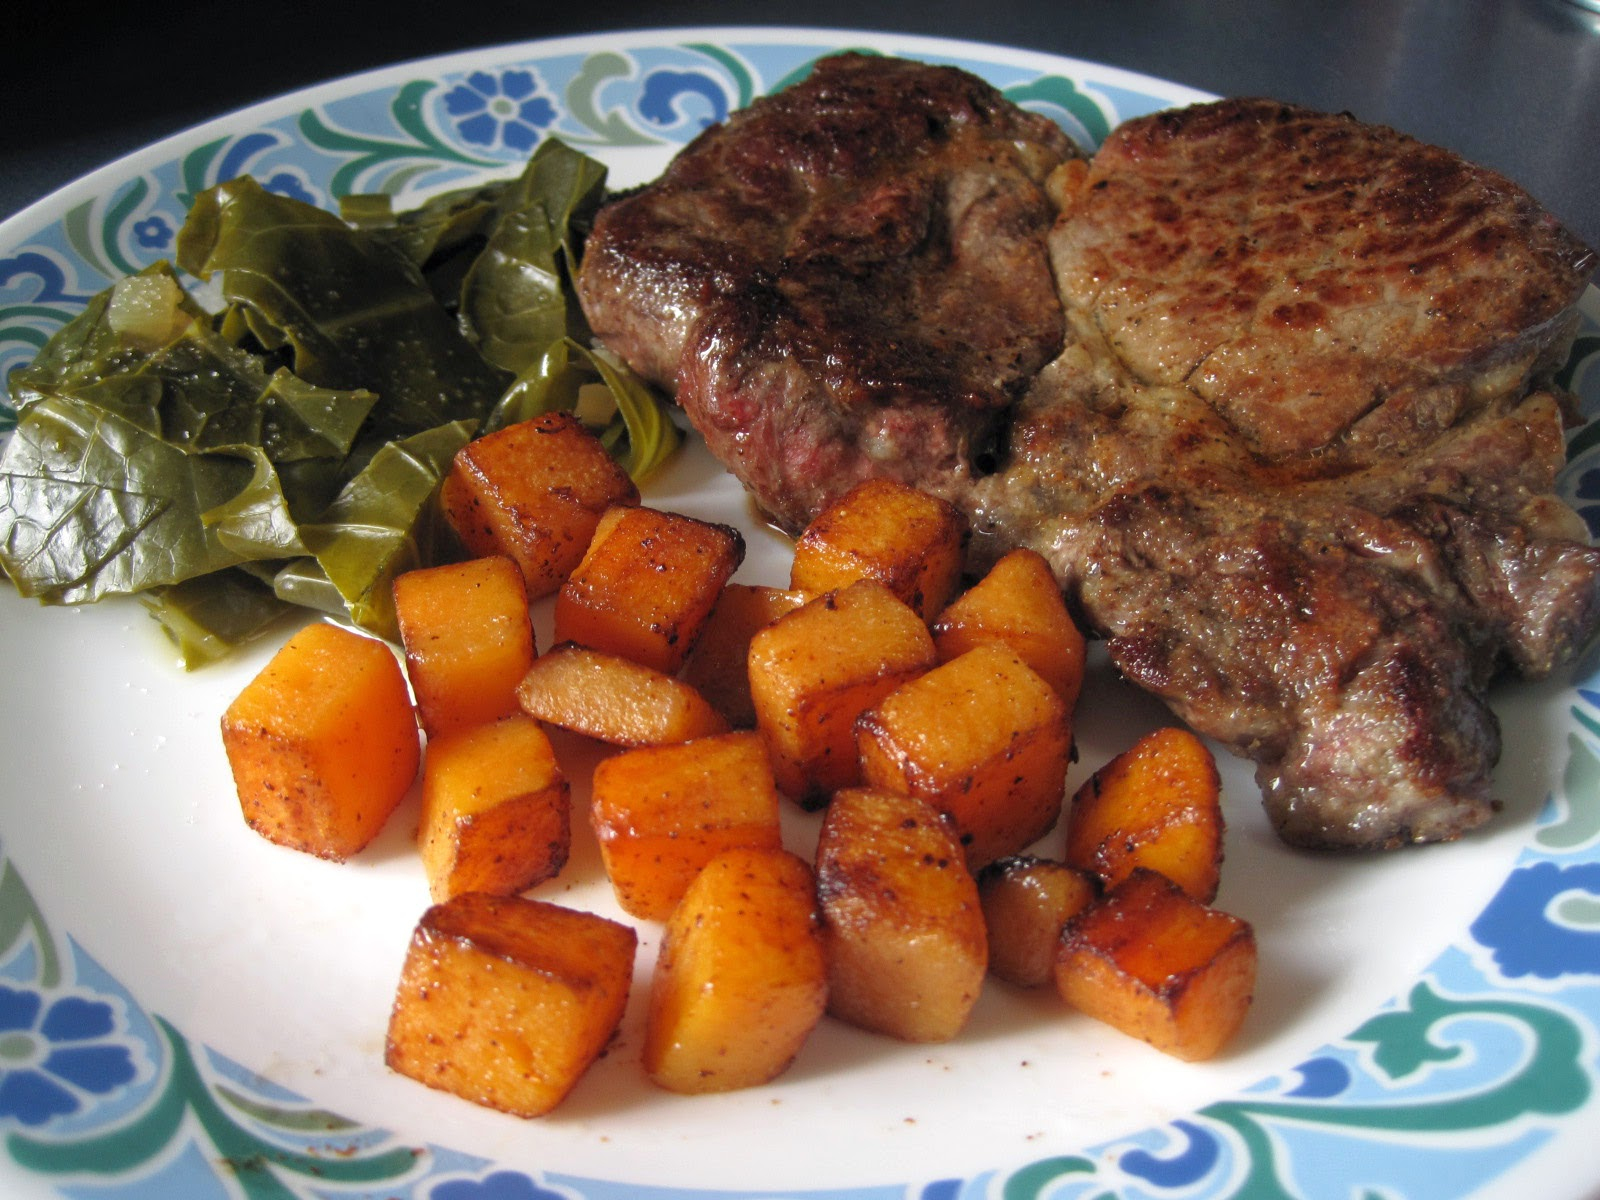 AIP recipe steak dinner